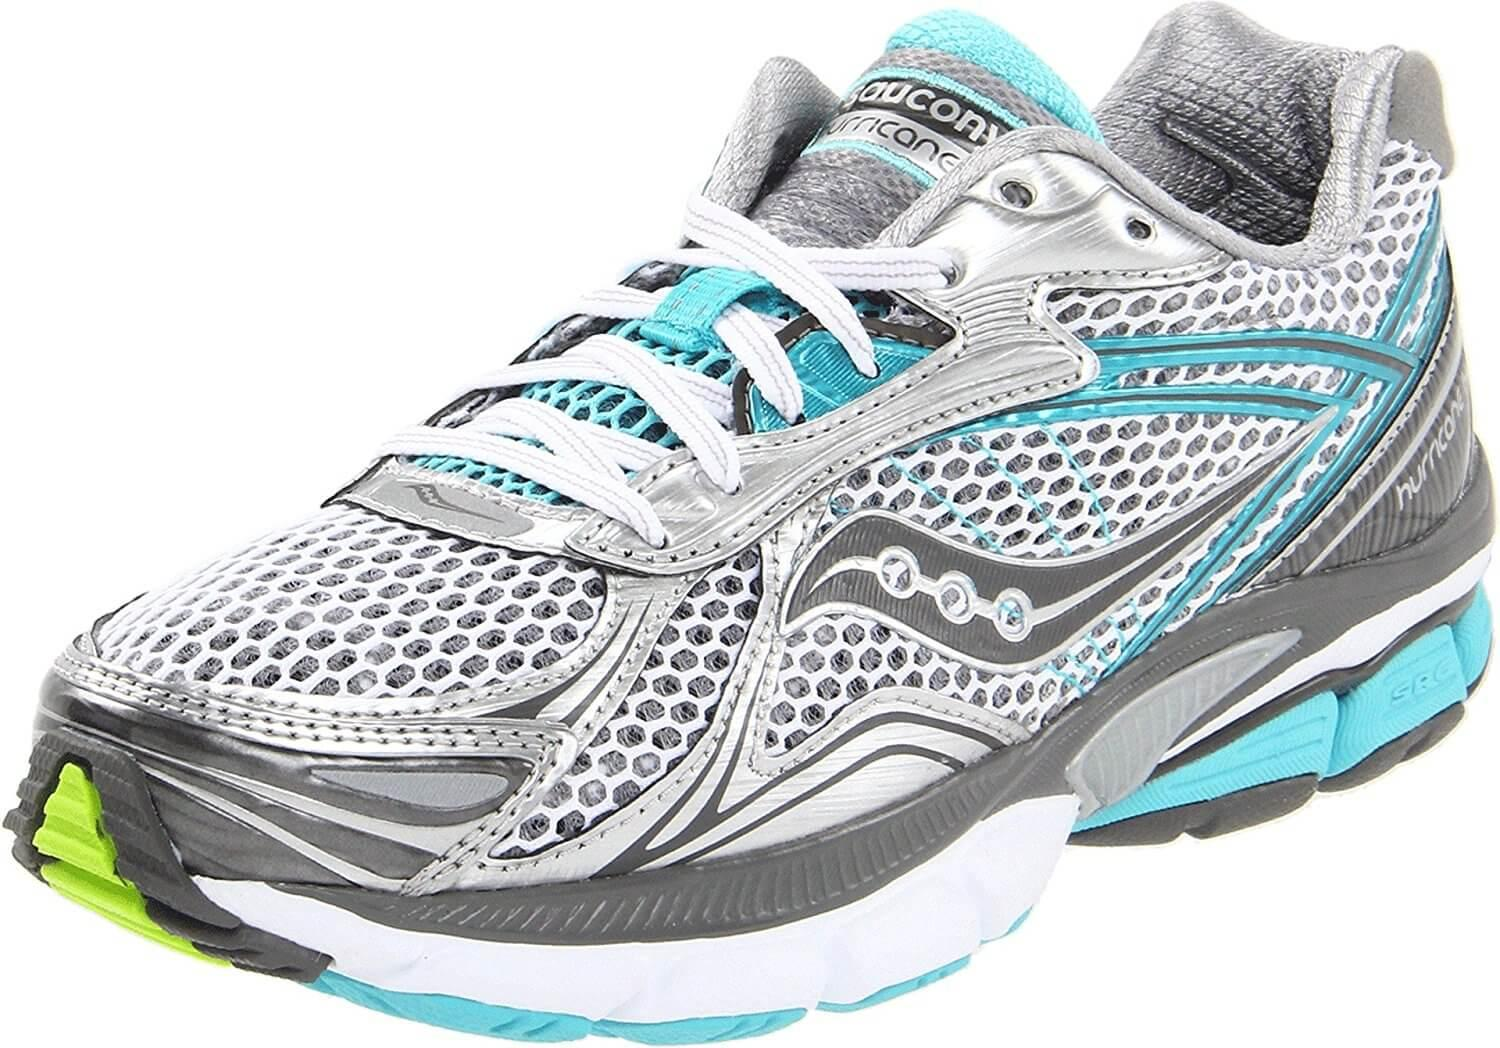 Saucony Hurricane 14 has seen some major changes since its previous iteration.